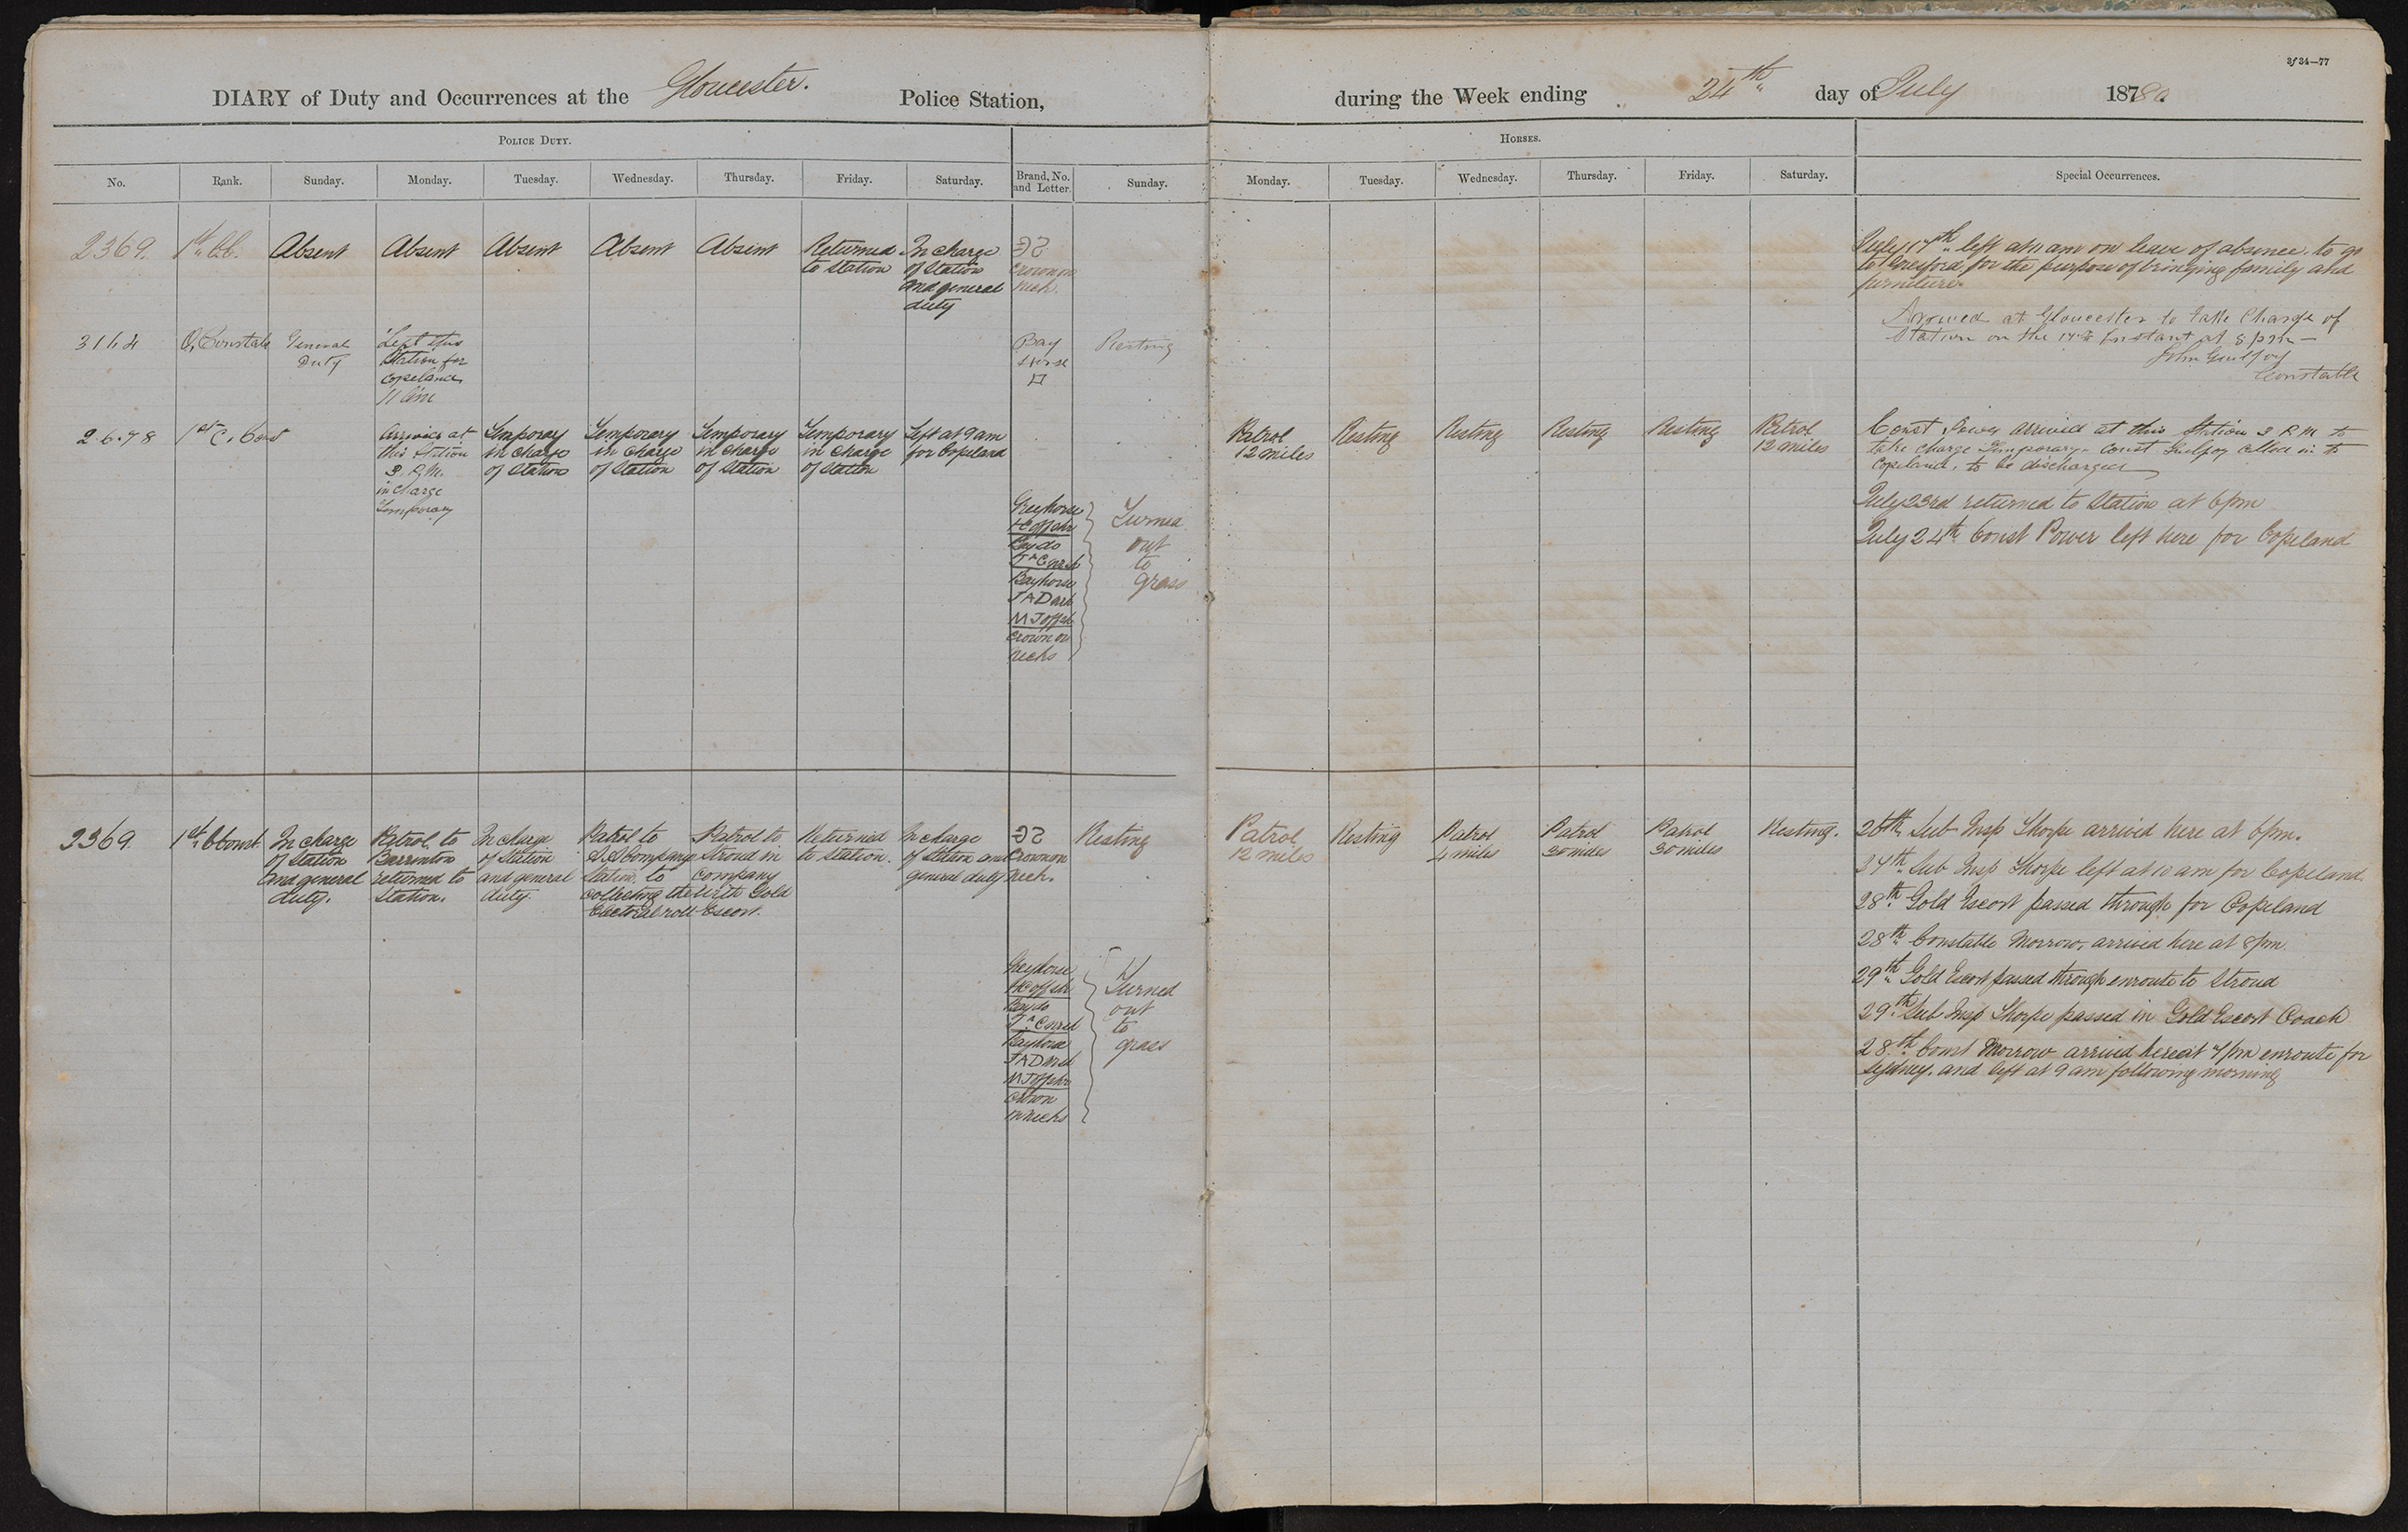 Diary of duty and occurrences at the Gloucester Police Station during the week ending the 24th day of July 1880